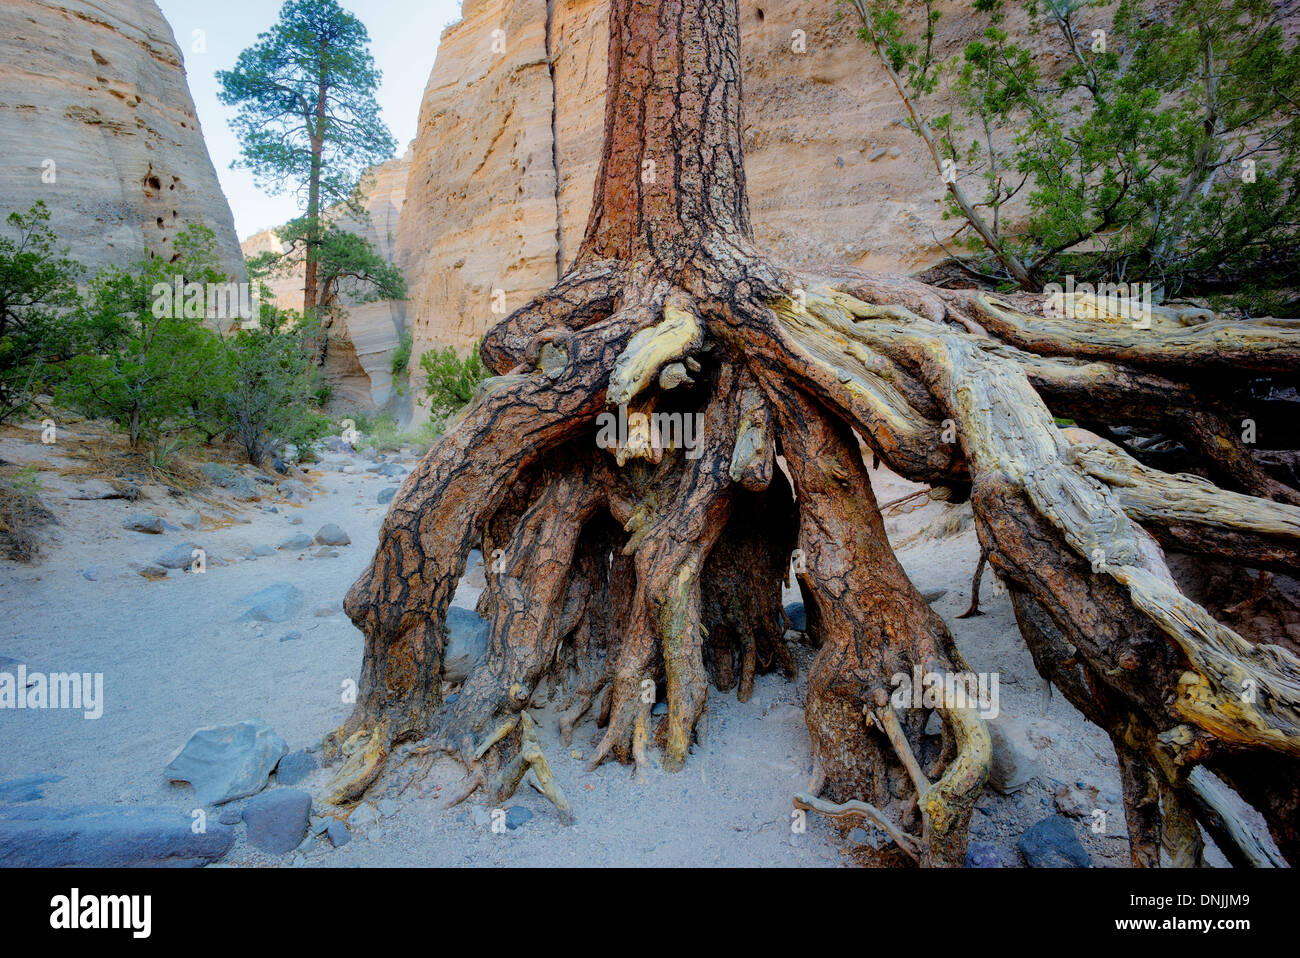 Exposed roots of Ponderosa Pine Tree in eroded streambed. Tent Rocks National Monument. Kasha-Katuwe,New Mexico - Stock Image